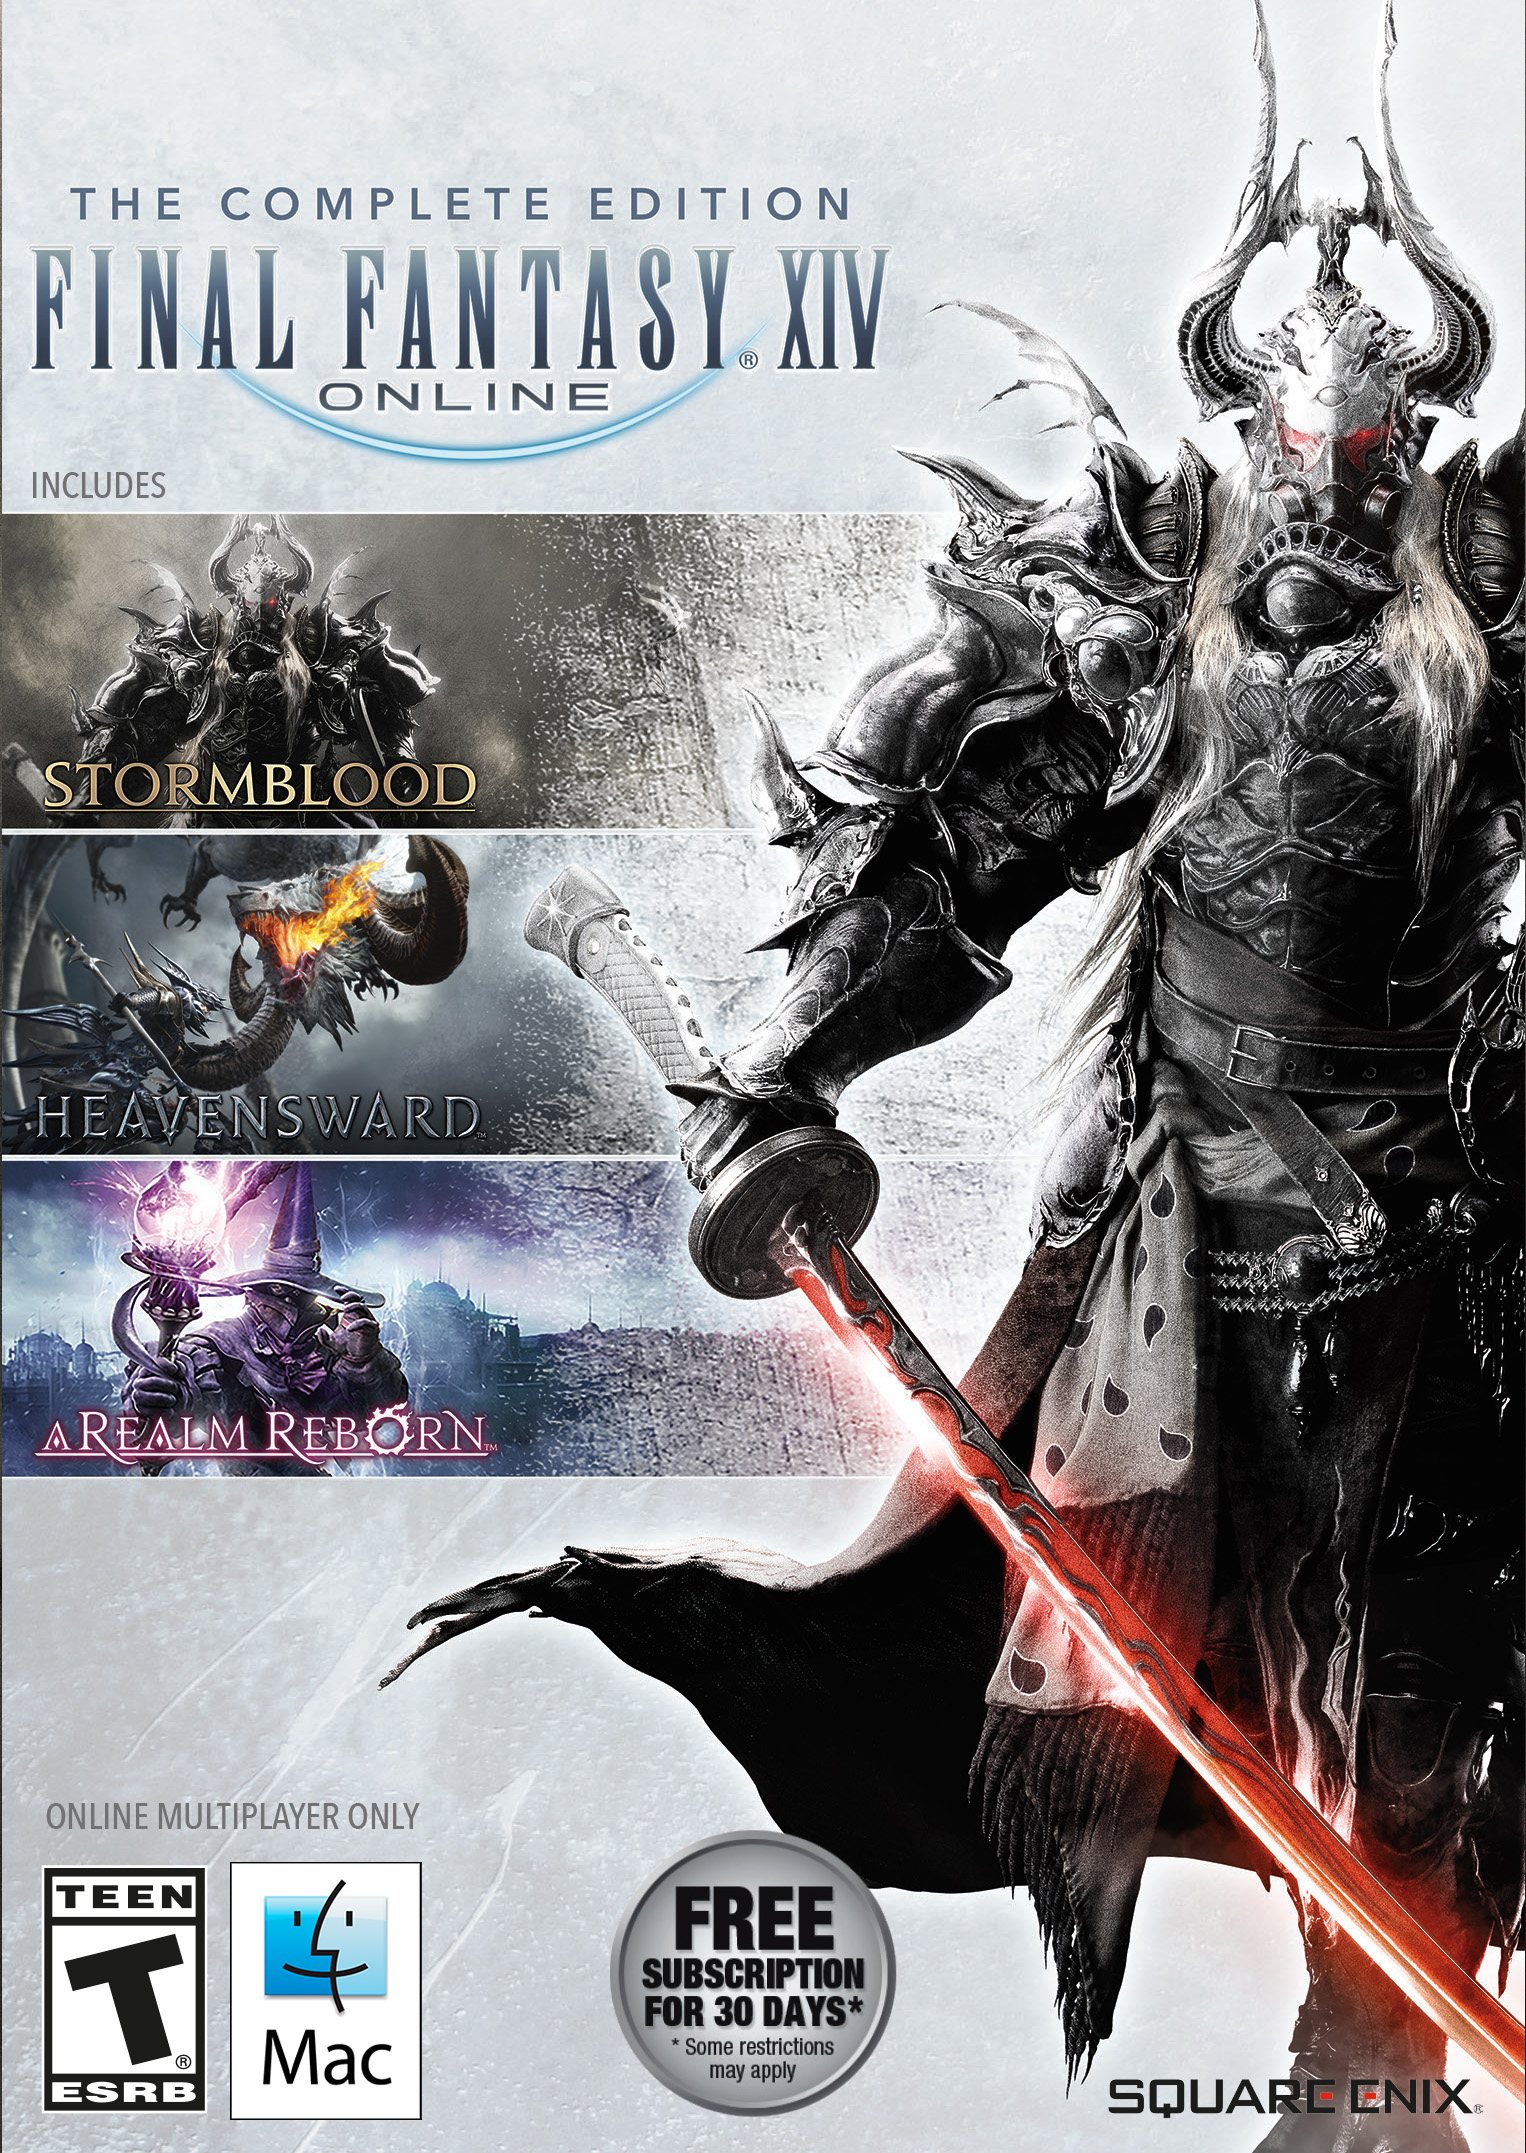 FINAL FANTASY XIV Online Complete Edition (Mac) [Online Game Code]